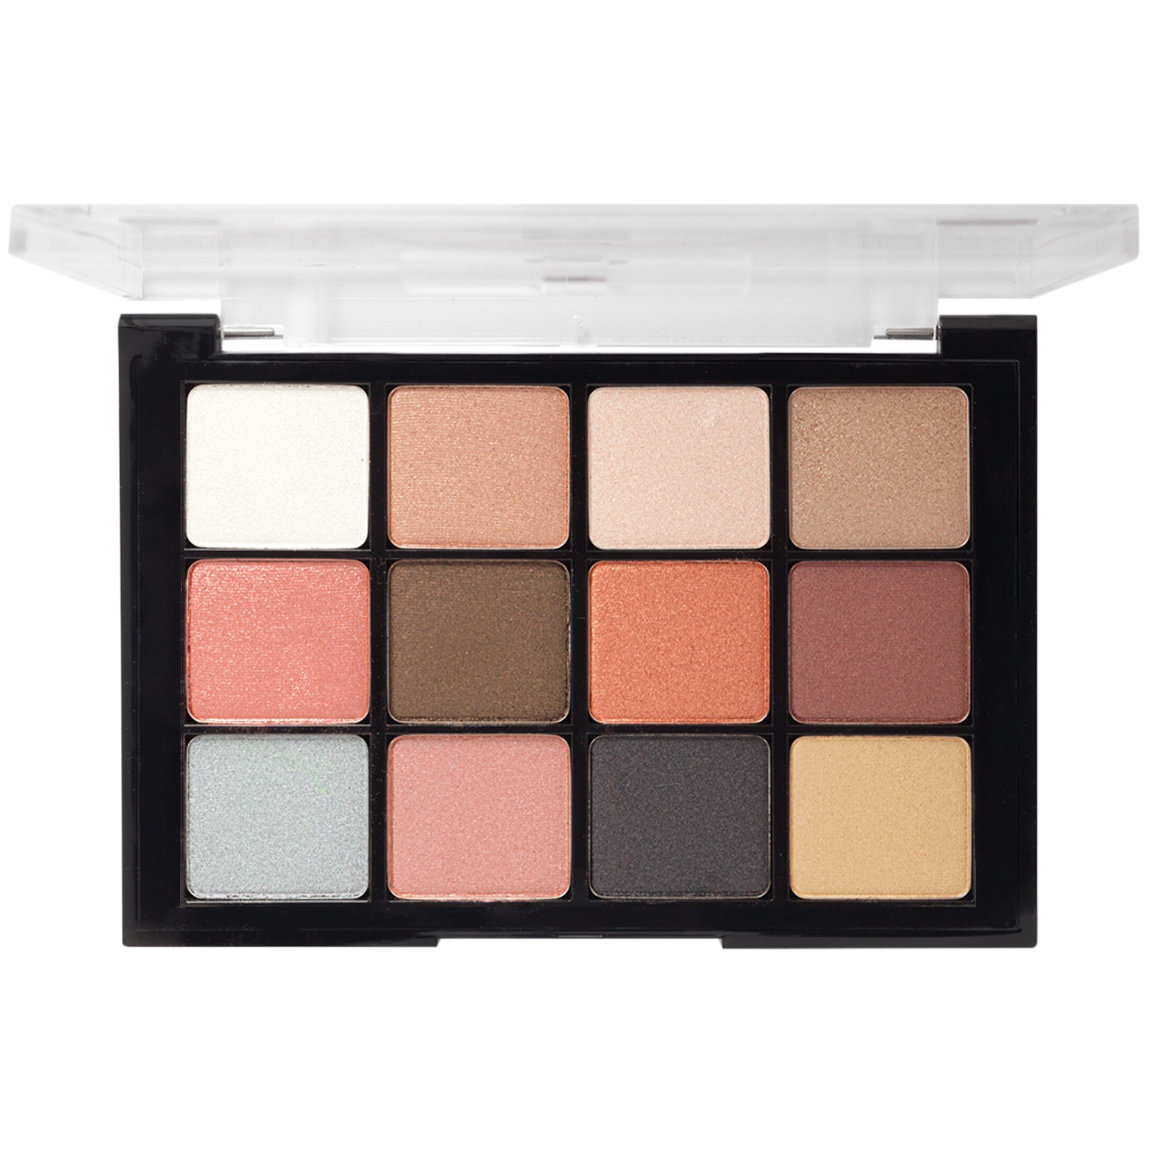 Viseart Eye Shadow Palette 5 Sultry Muse product smear.